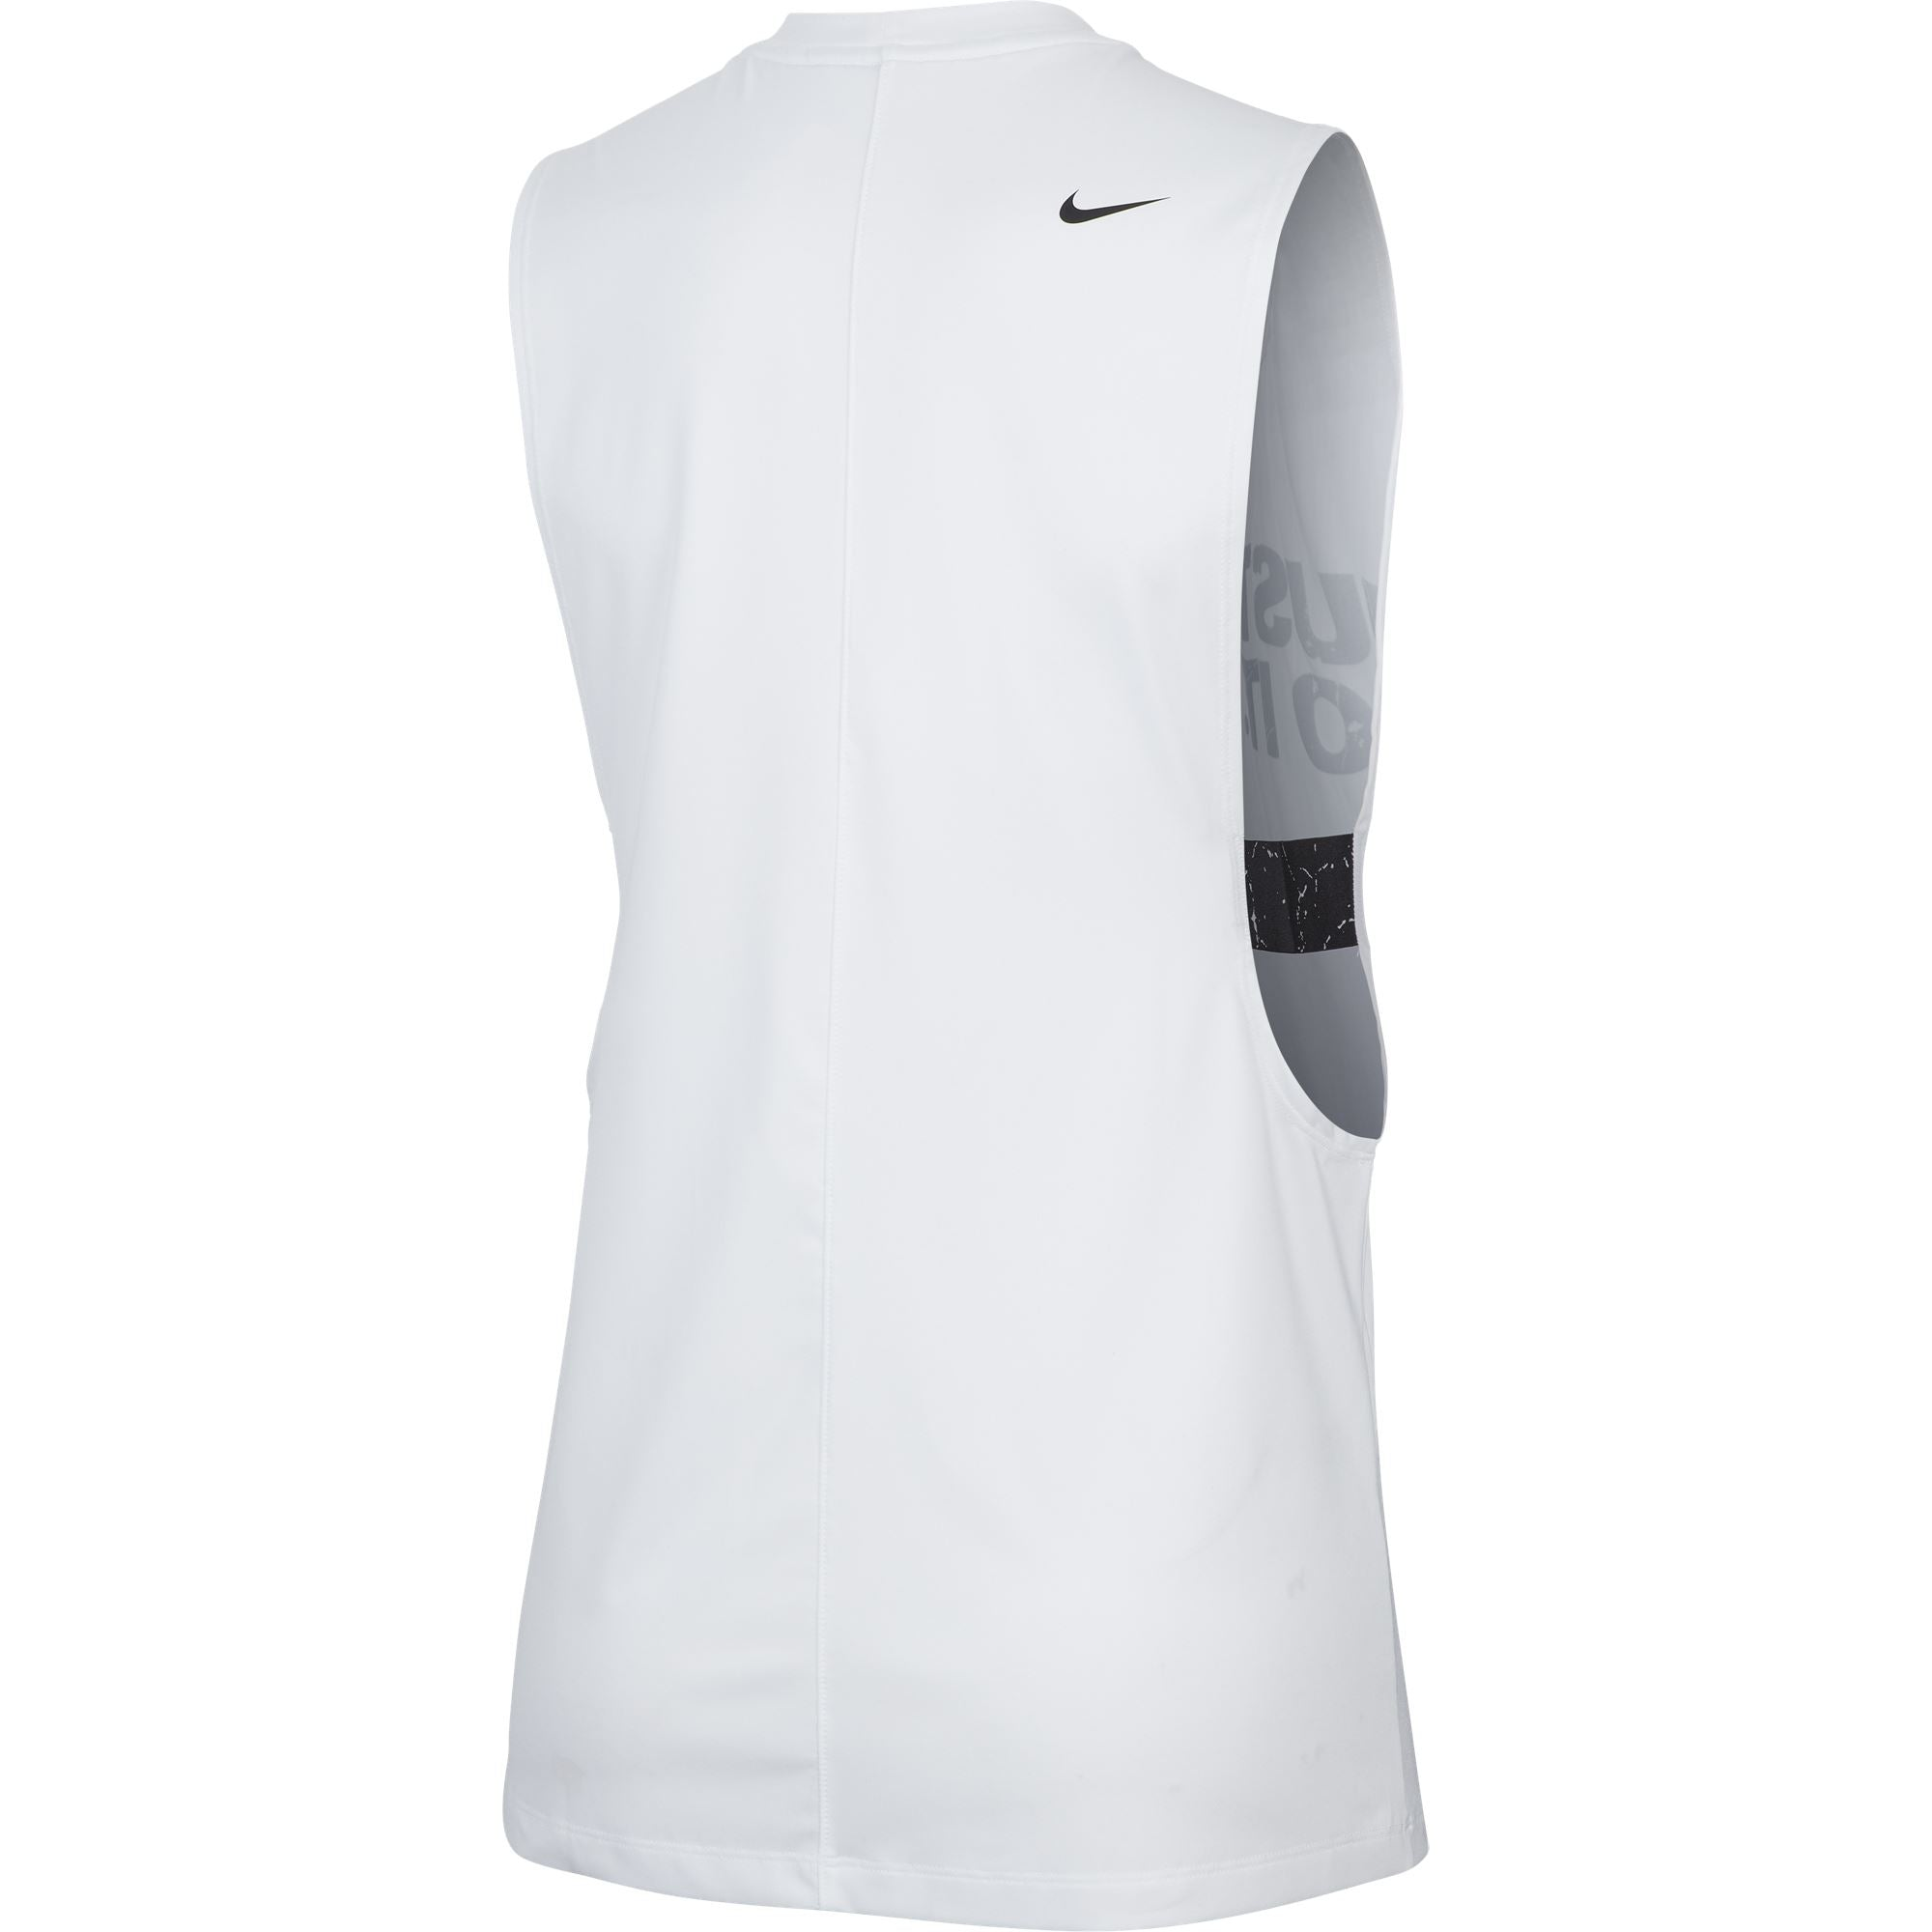 Nike Womens NP Marle GRX Loose Tank - White/Black SportsPower Geelong